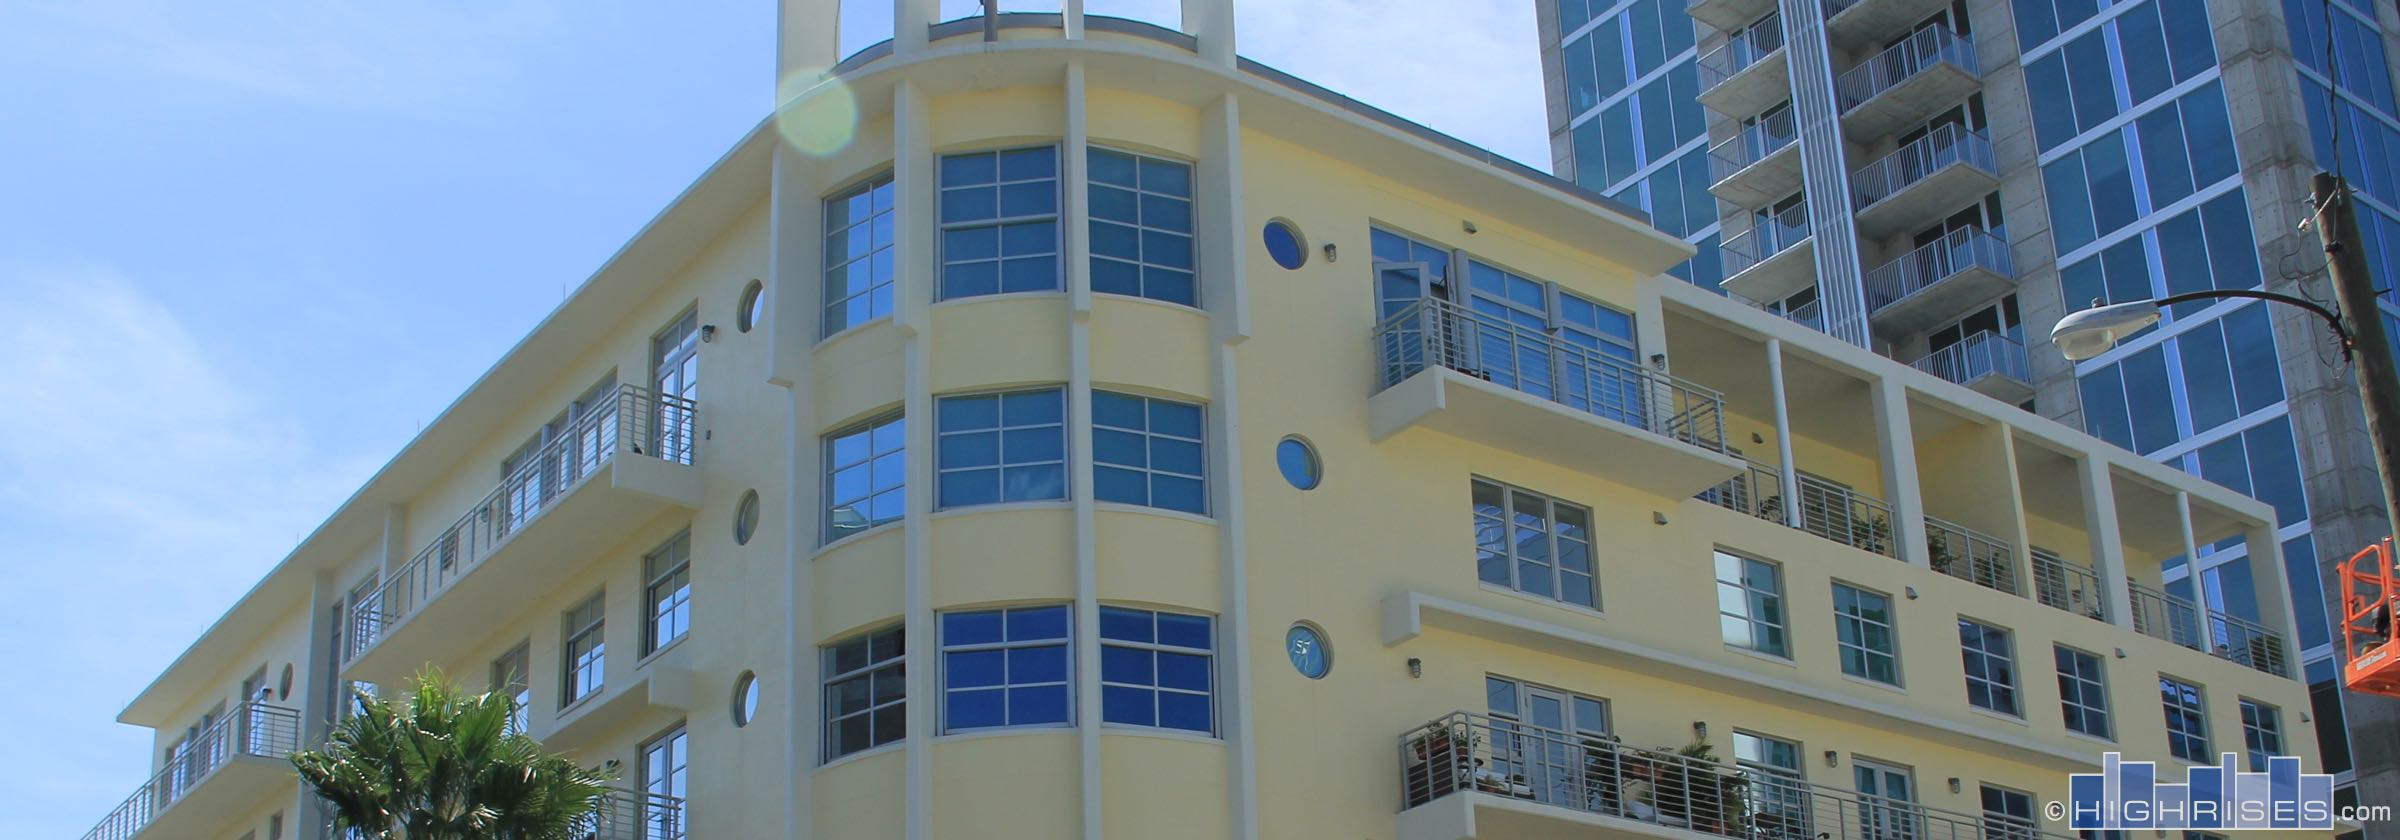 the meridian lofts of tampa fl 1212 whiting st